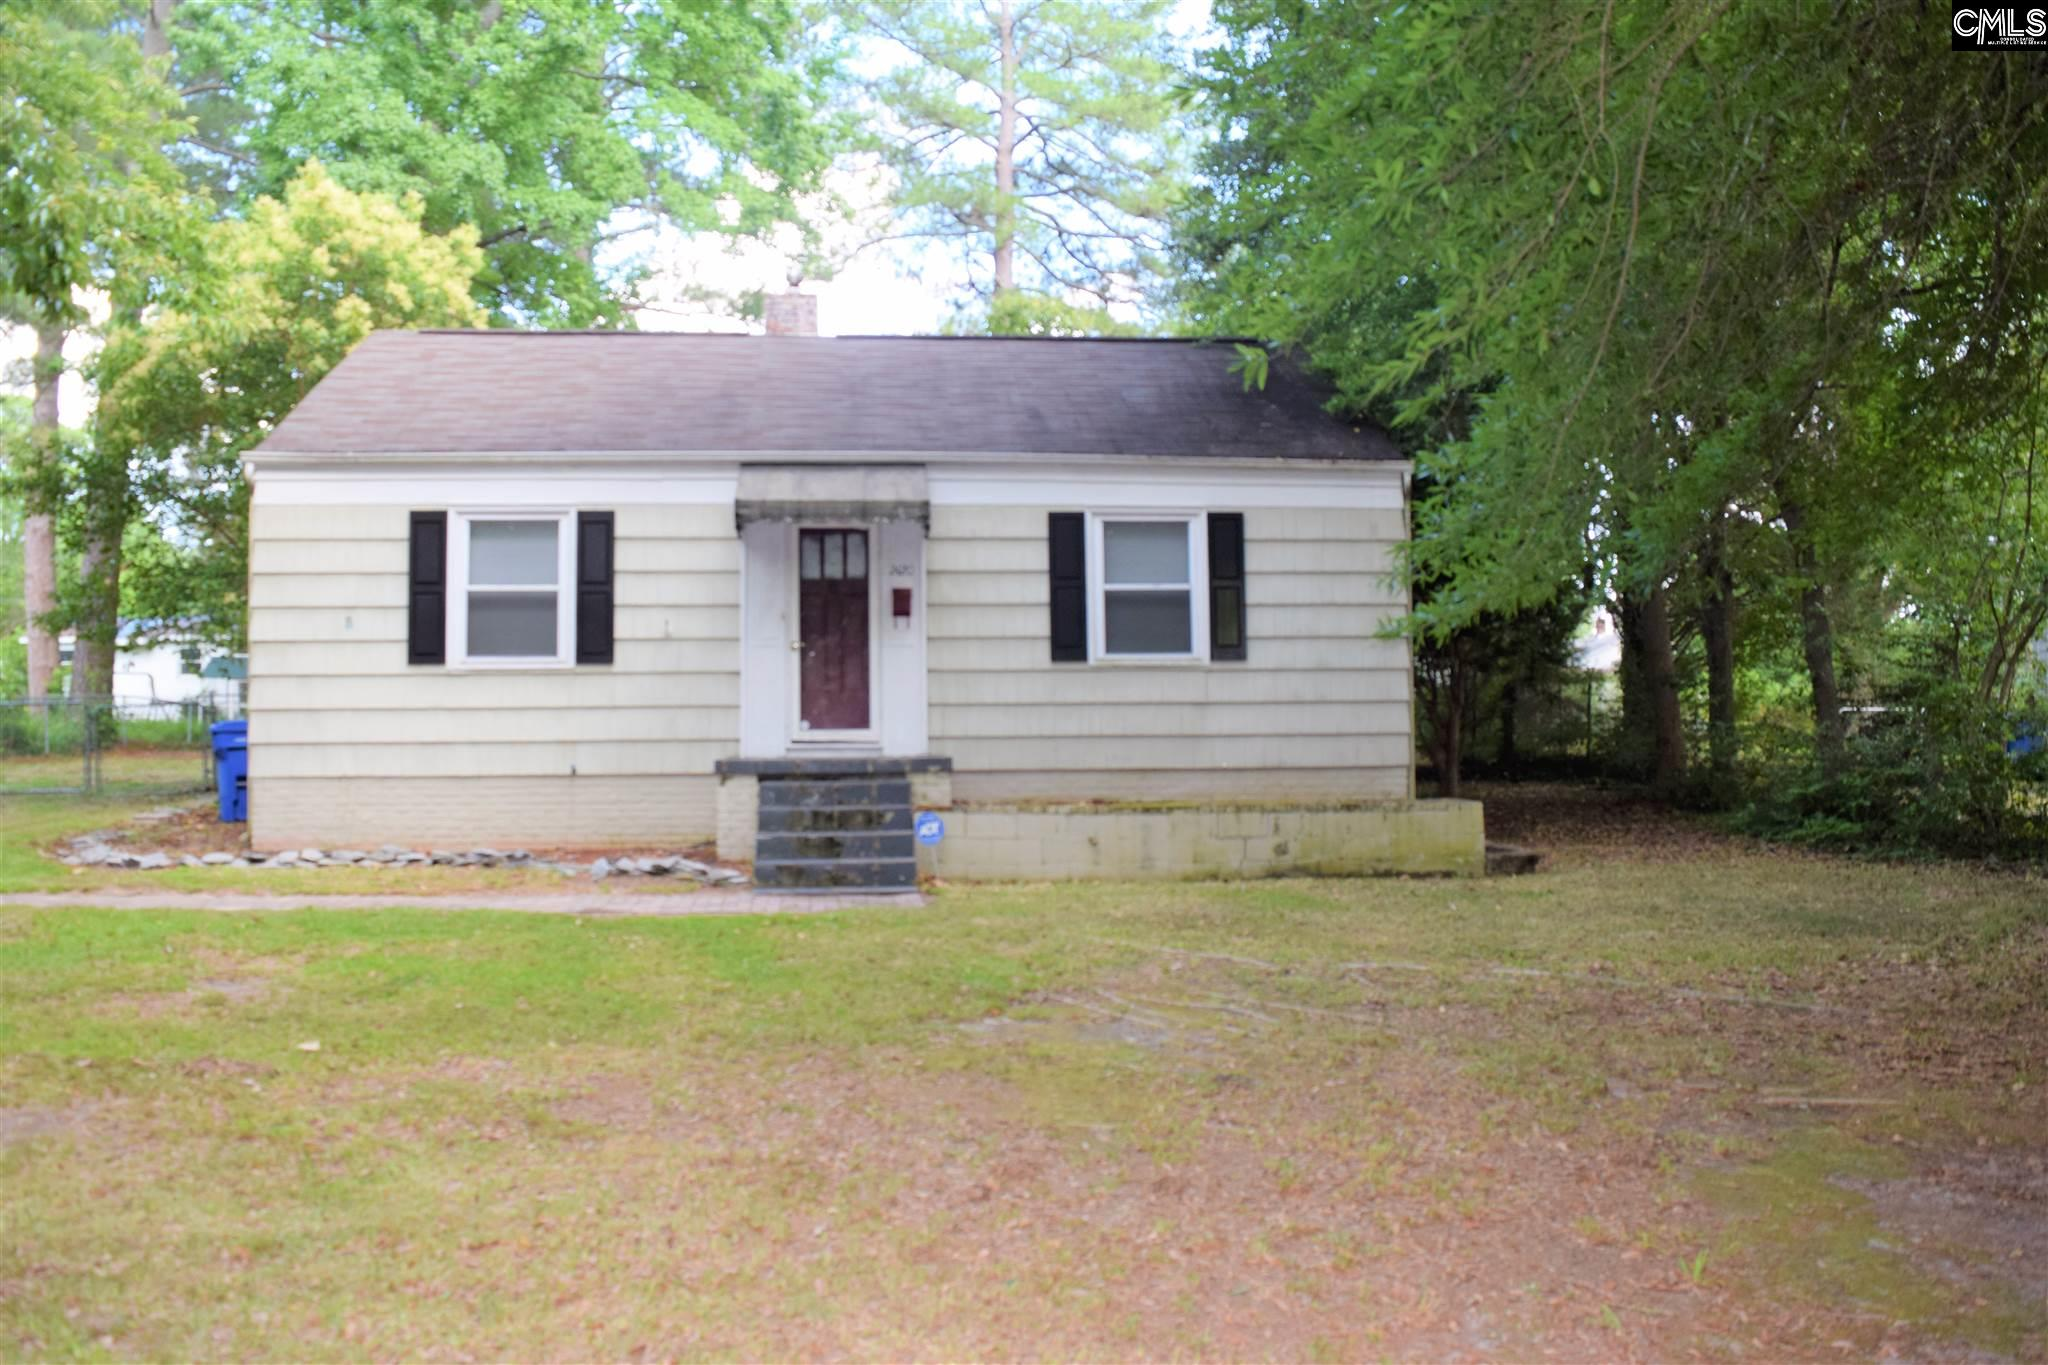 2420 Rigby Columbia, SC 29204-2644